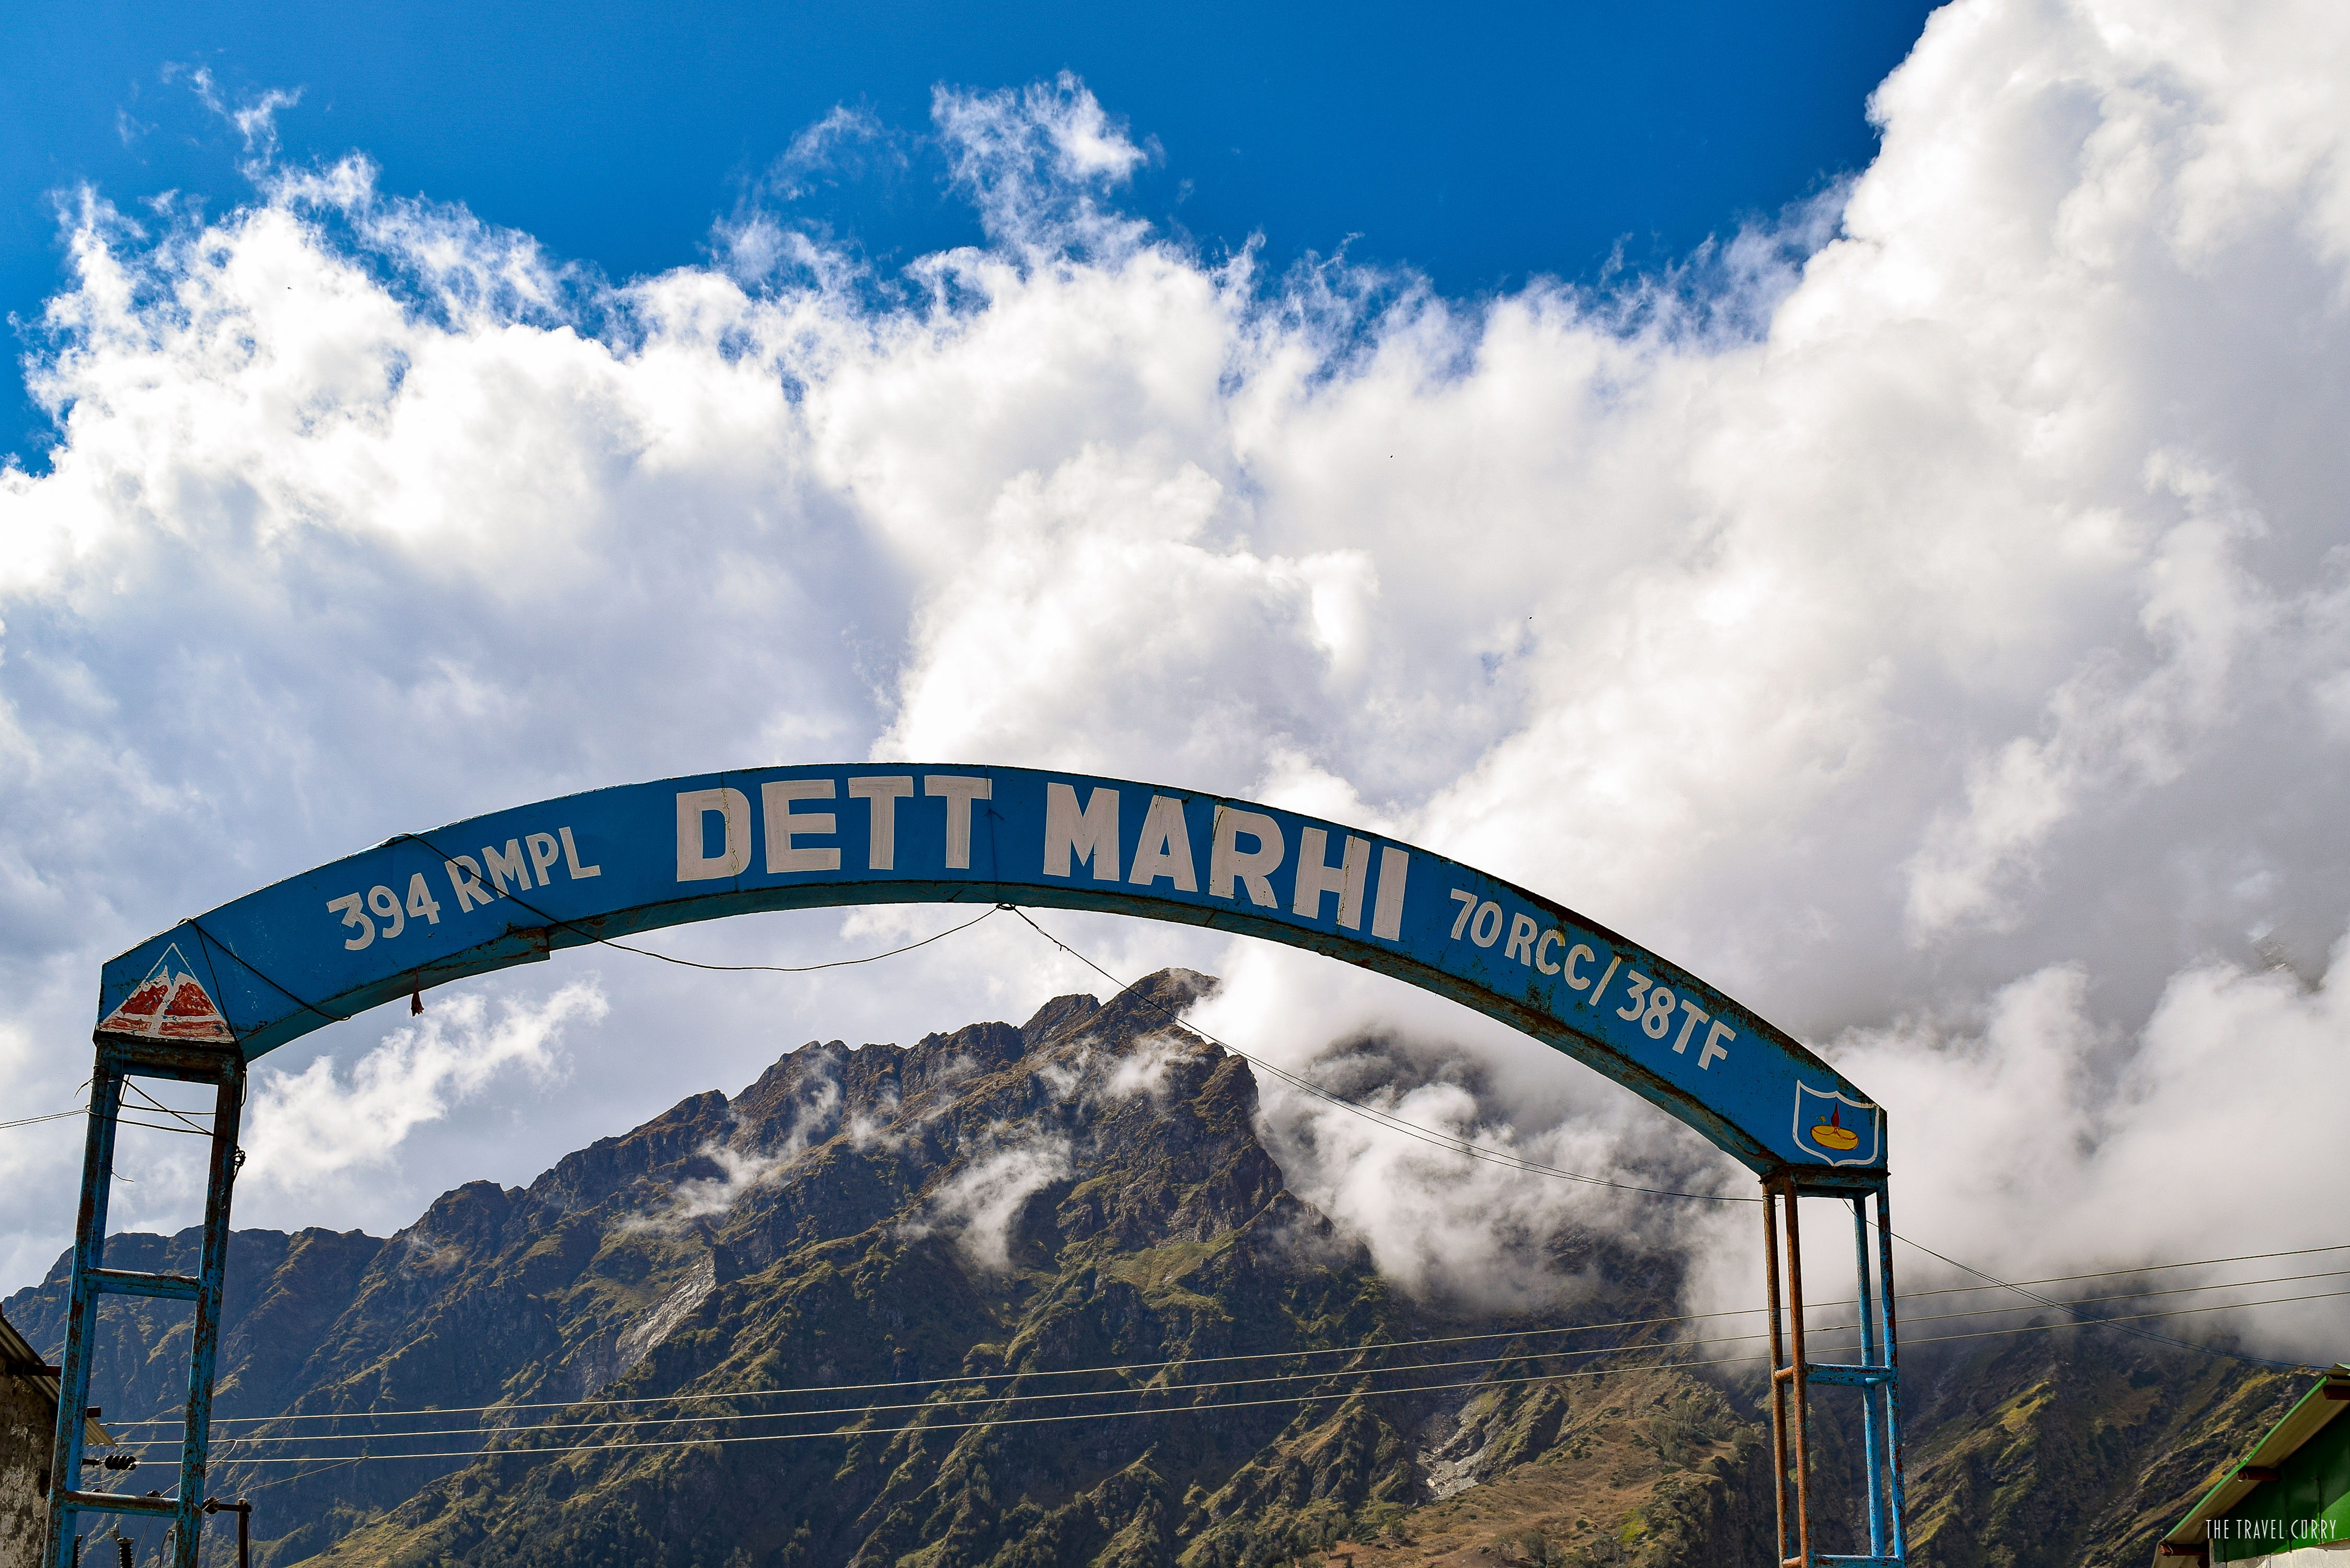 The last village before Rohtang